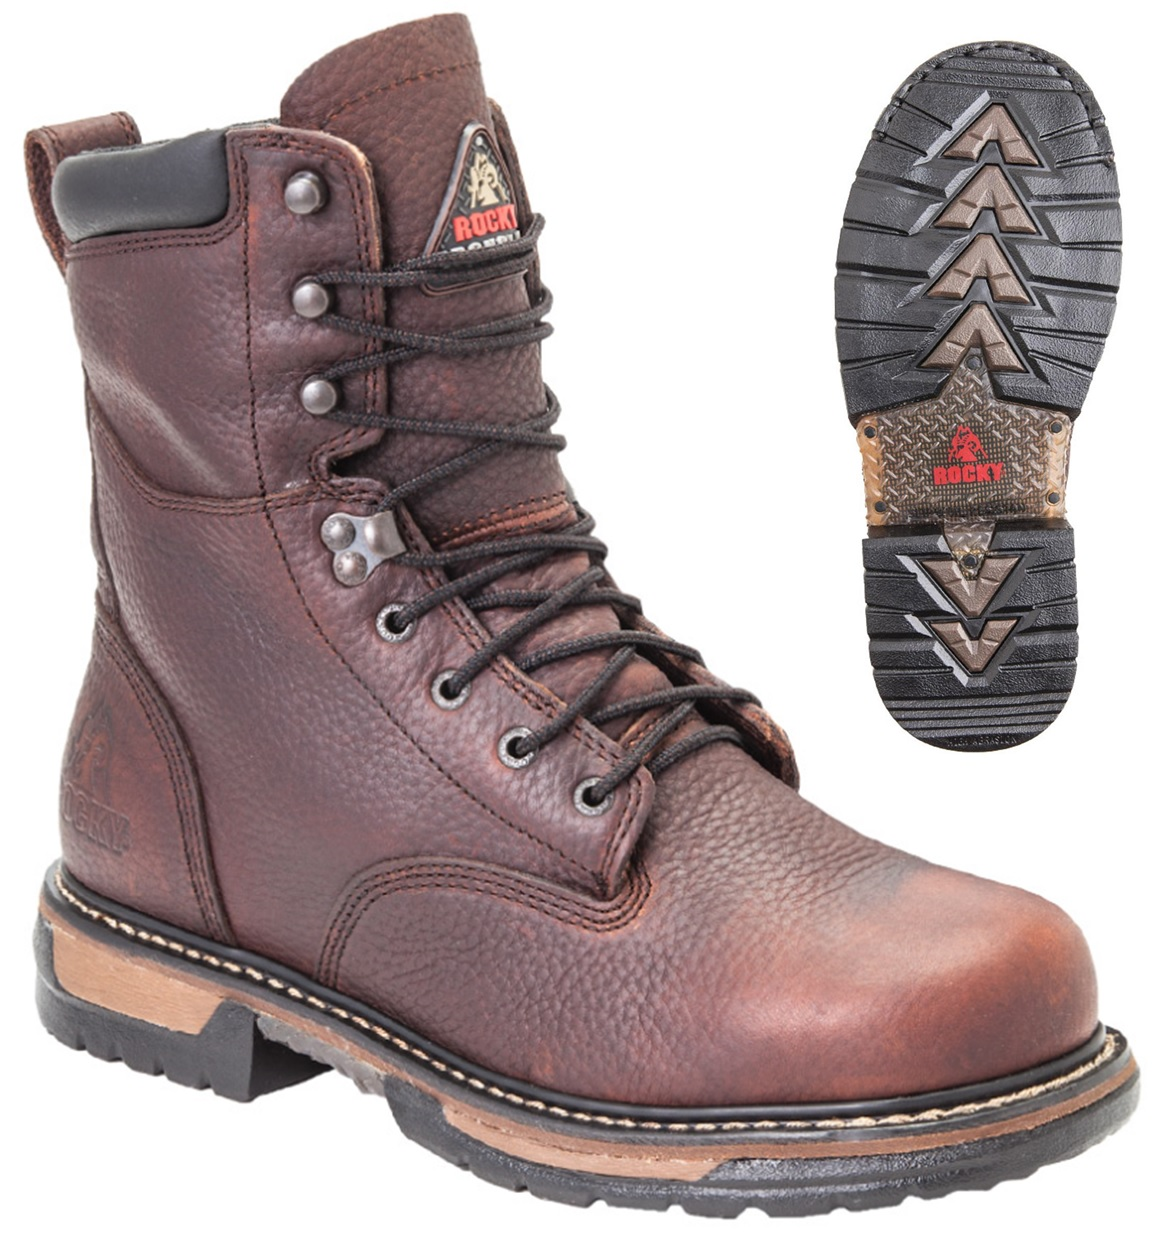 Mens Leather Work Boots 2192Ywc3